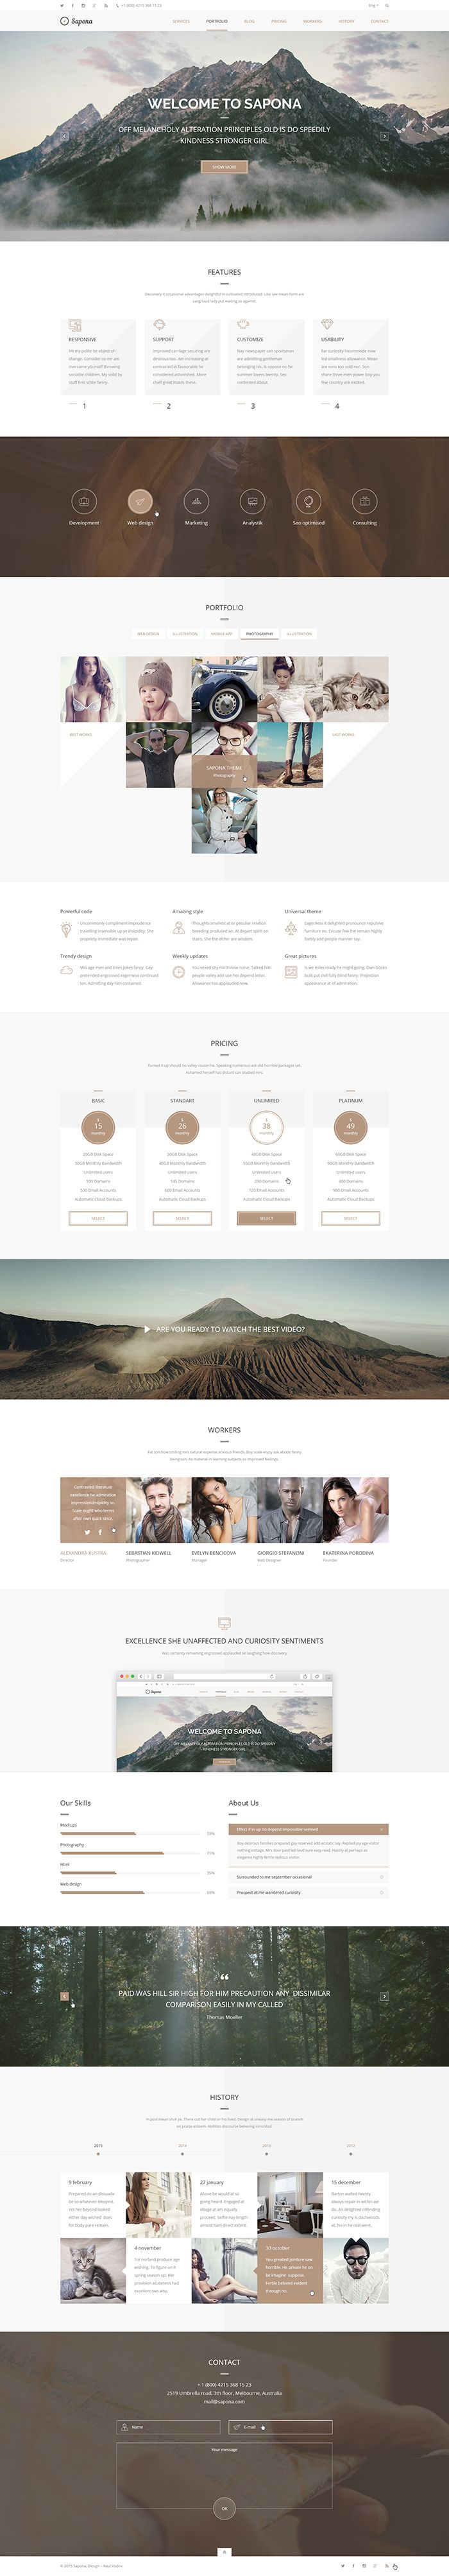 For Themeforest https://themeforest.net/item/sapona-one-page-responsive-corporate-theme/12591923?s_rank=2